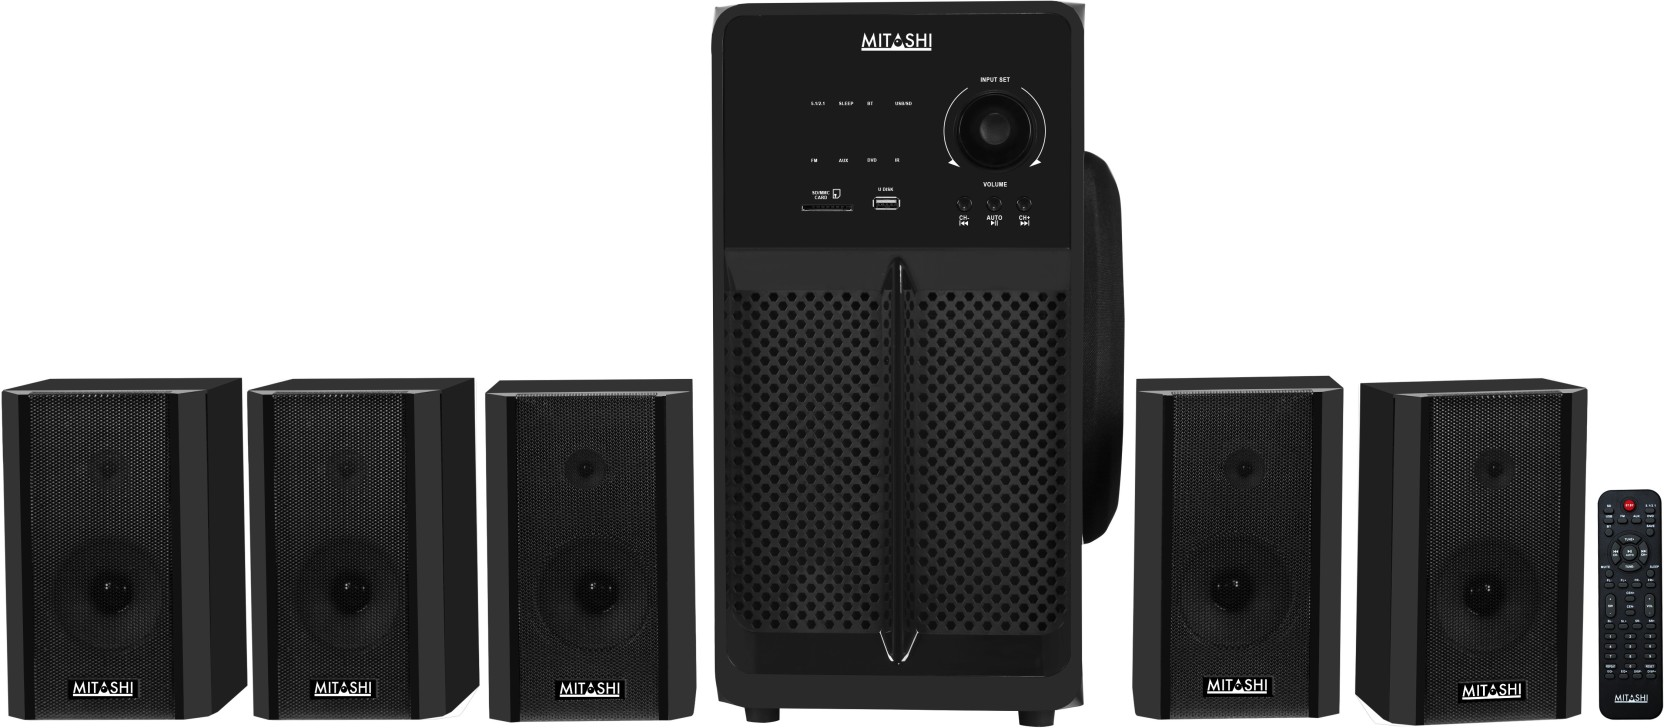 Buy Mitashi 12500 Watts Pmpo 51 Ch Ht 8150 Bt Home Theatre Electronics Gt Tv Video Audio Speakers Subwoofers System With Bluetooth Add To Cart